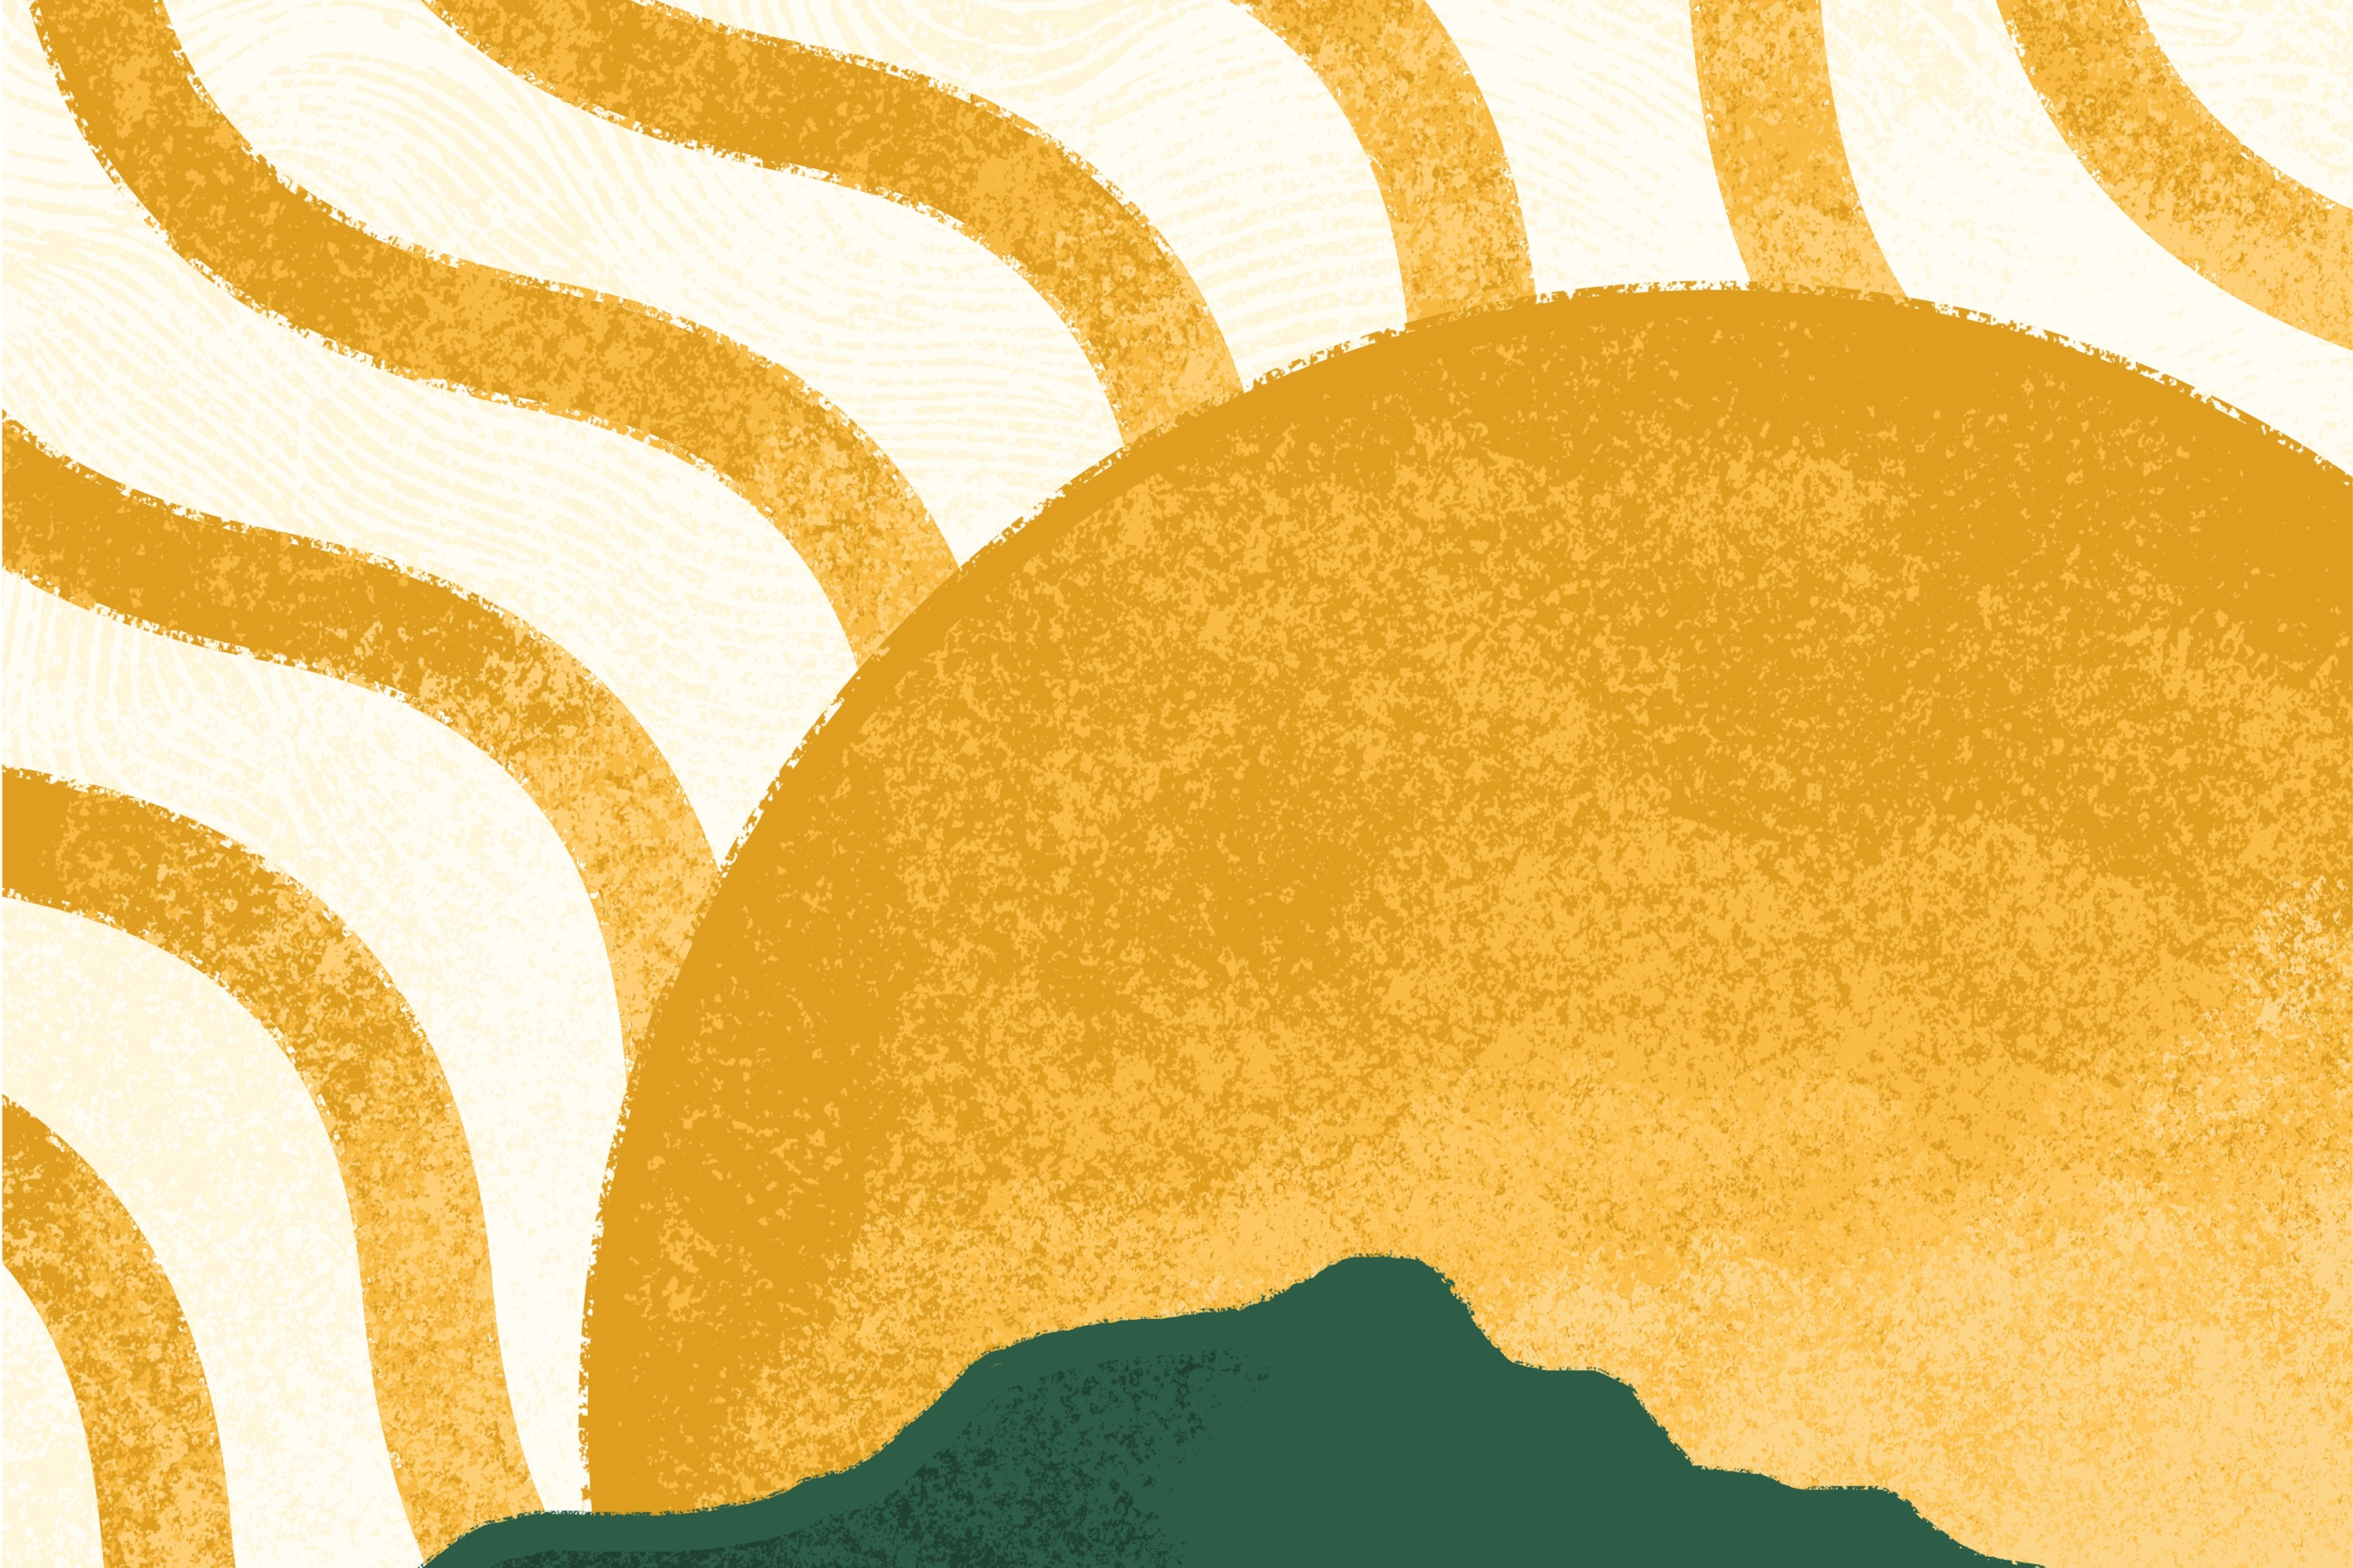 Illustration of the sun over green hills